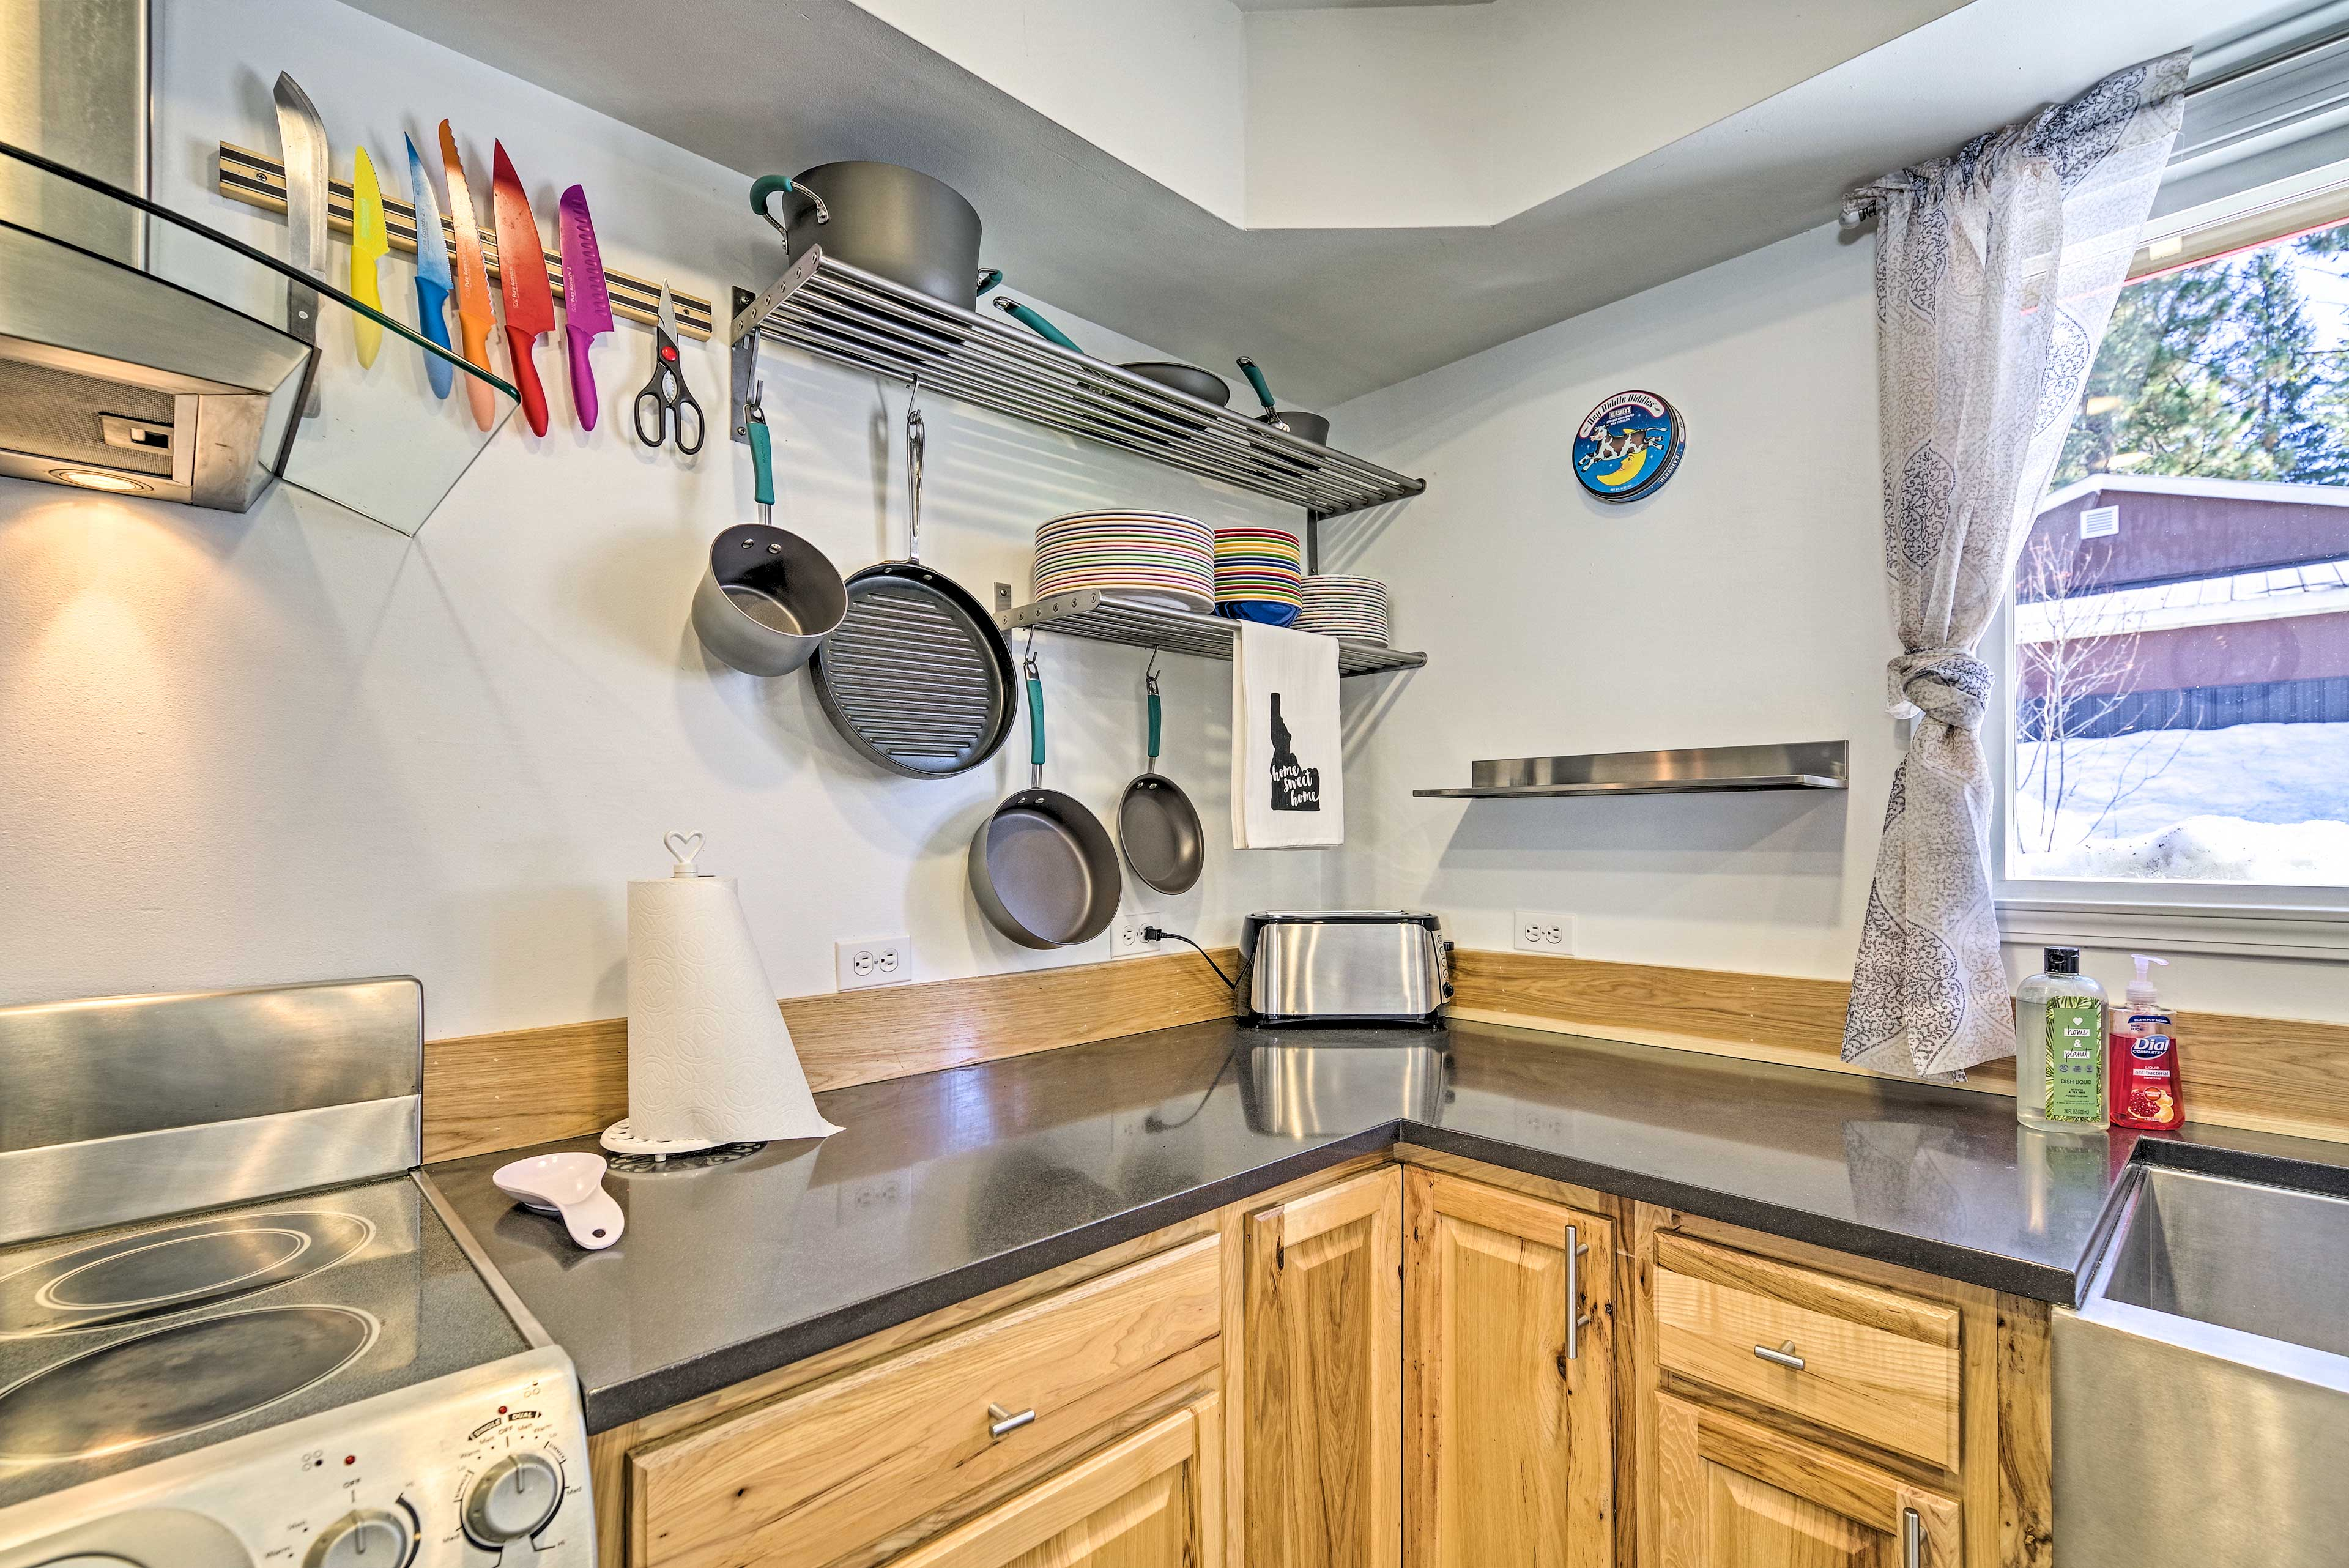 You'll love preparing your favorite dishes in this kitchen.